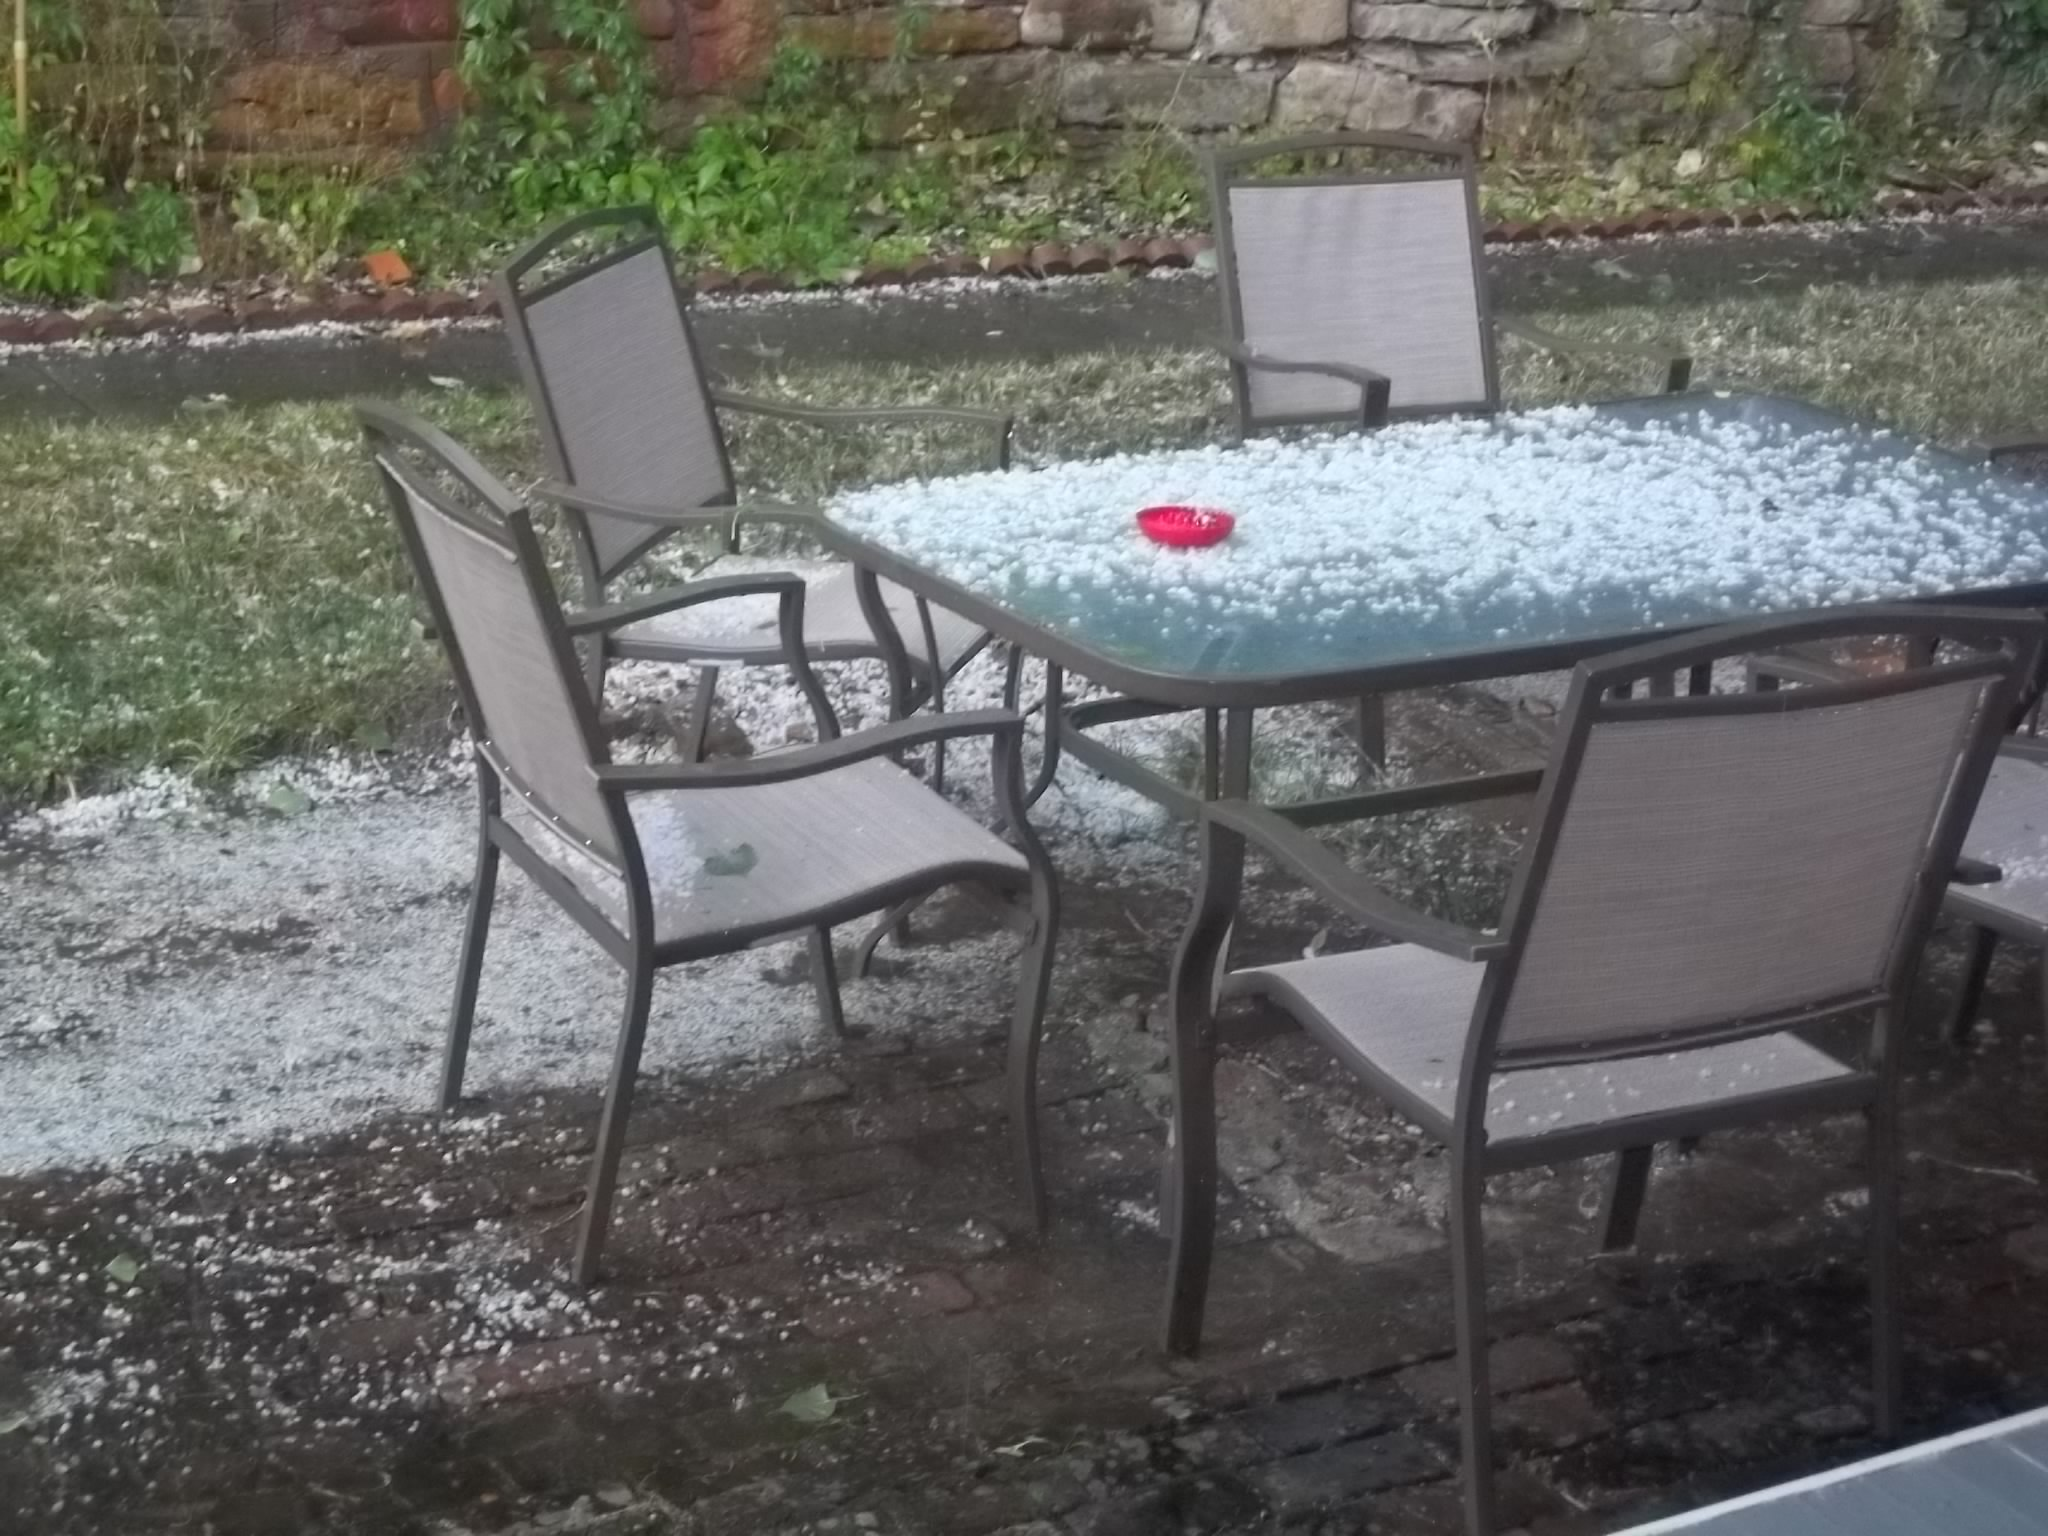 This hail fell down 20 minutes after the sun was out 110% and melted after the sun came right back out. Weird, huh? Go figure South Dakota.